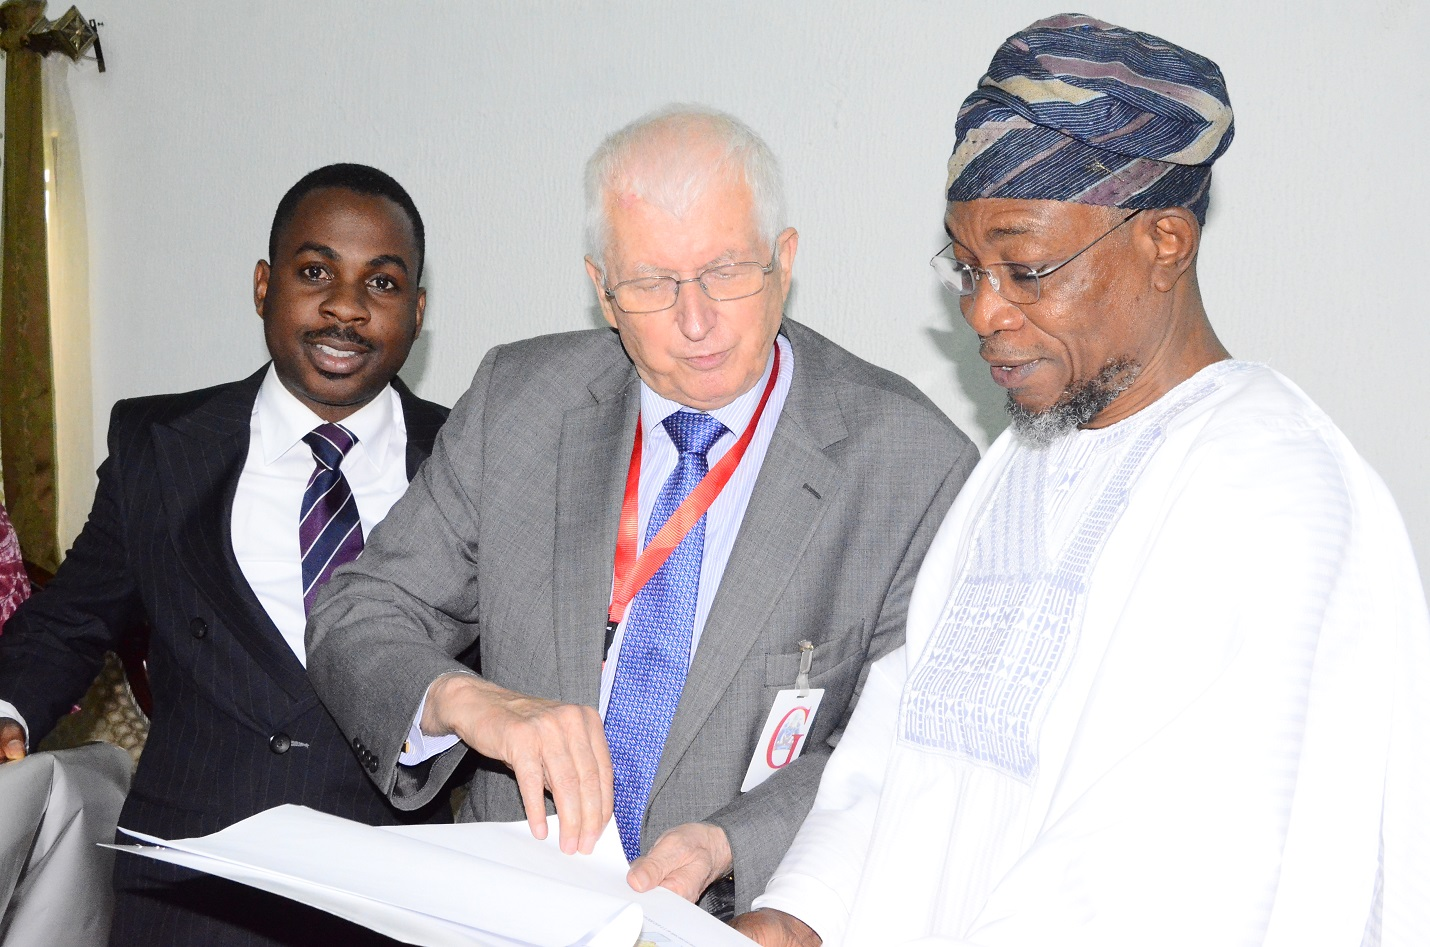 Governor State of Osun, Ogbeni Rauf Aragbesola (right); Executive Chairman Safari Book ltd, Chief Joop Berkhout OOn (middle) and Director, Marketing & Business Development, Safari Book Ltd, Chief Joop George Berkhout (left), during the Presentation of School Wall Map Capturing State of Osun to the Governor at Government House, Osogbo